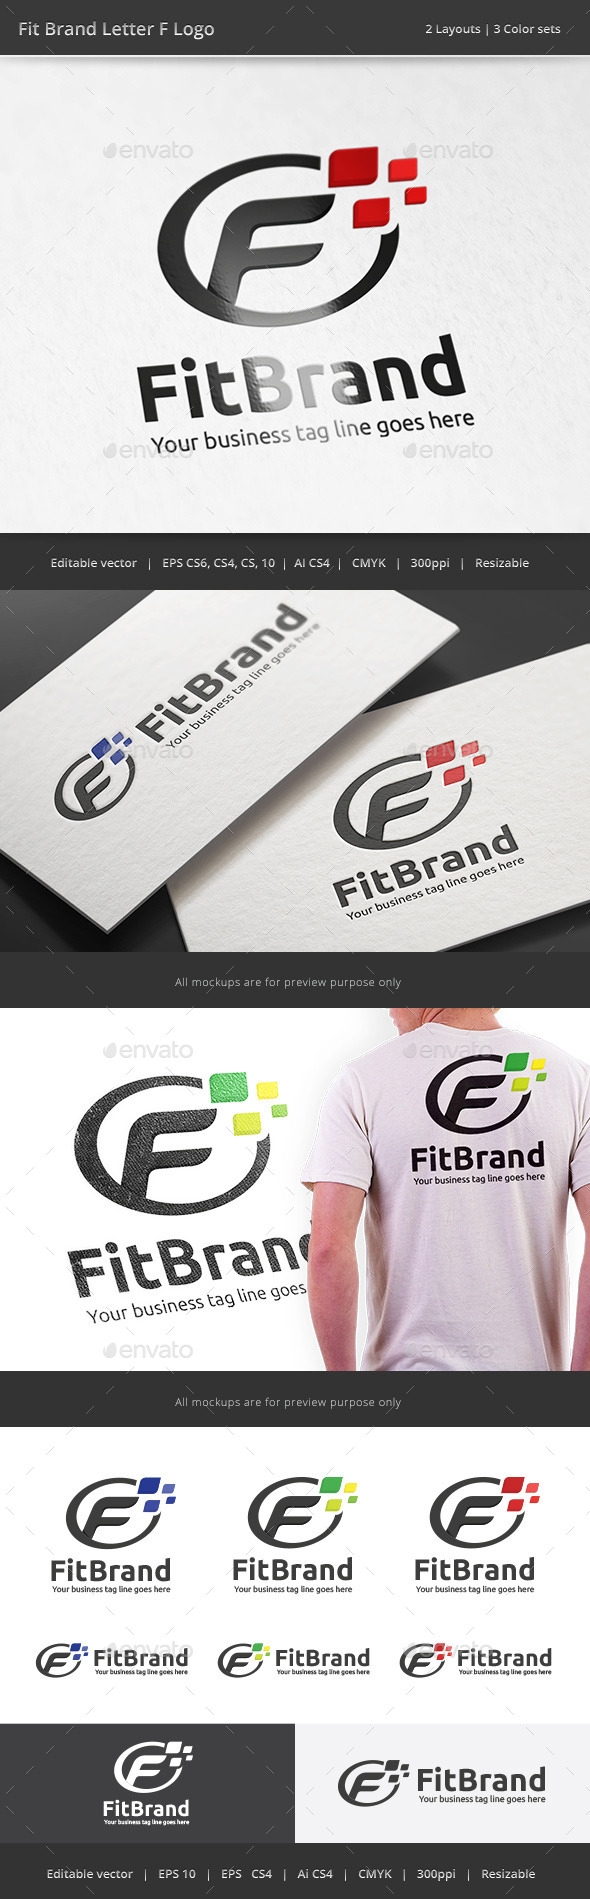 GraphicRiver Fit Brand Letter F Logo 10810392